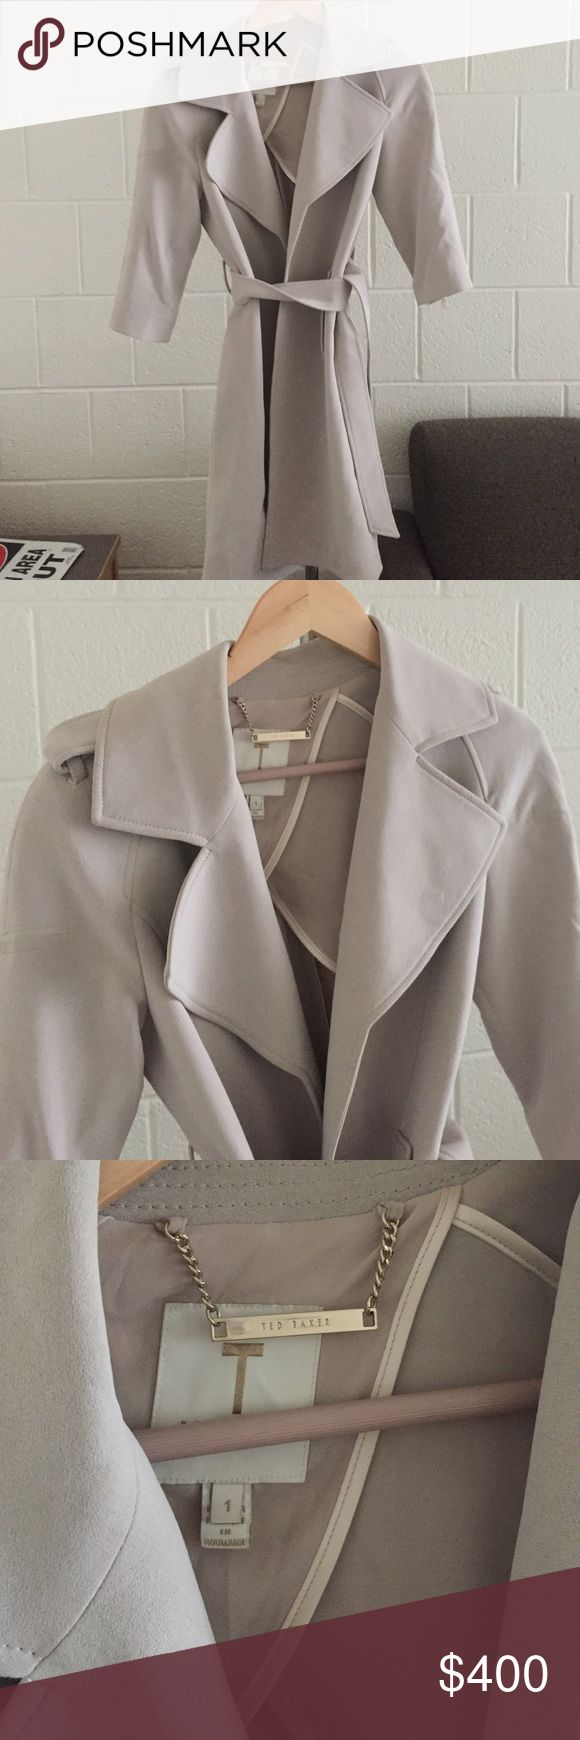 TED BAKER TRENCH Super chic and lovely. Worn only twice. Grey and fits a size 1 Baker by Ted Baker Jackets & Coats